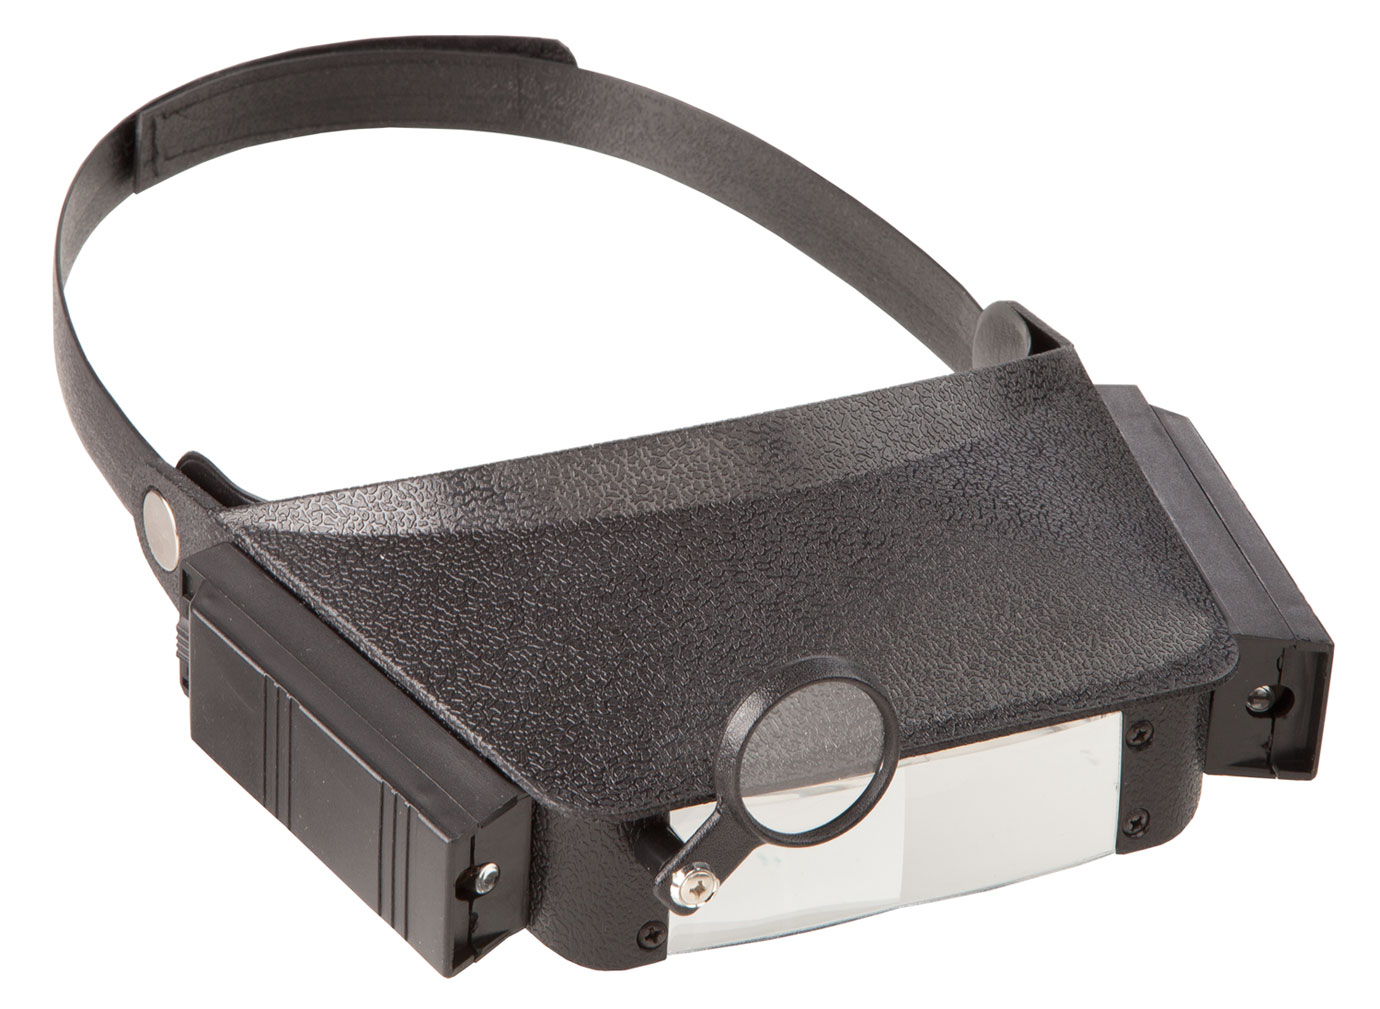 Lighted Head Visor Magnifier - View 2